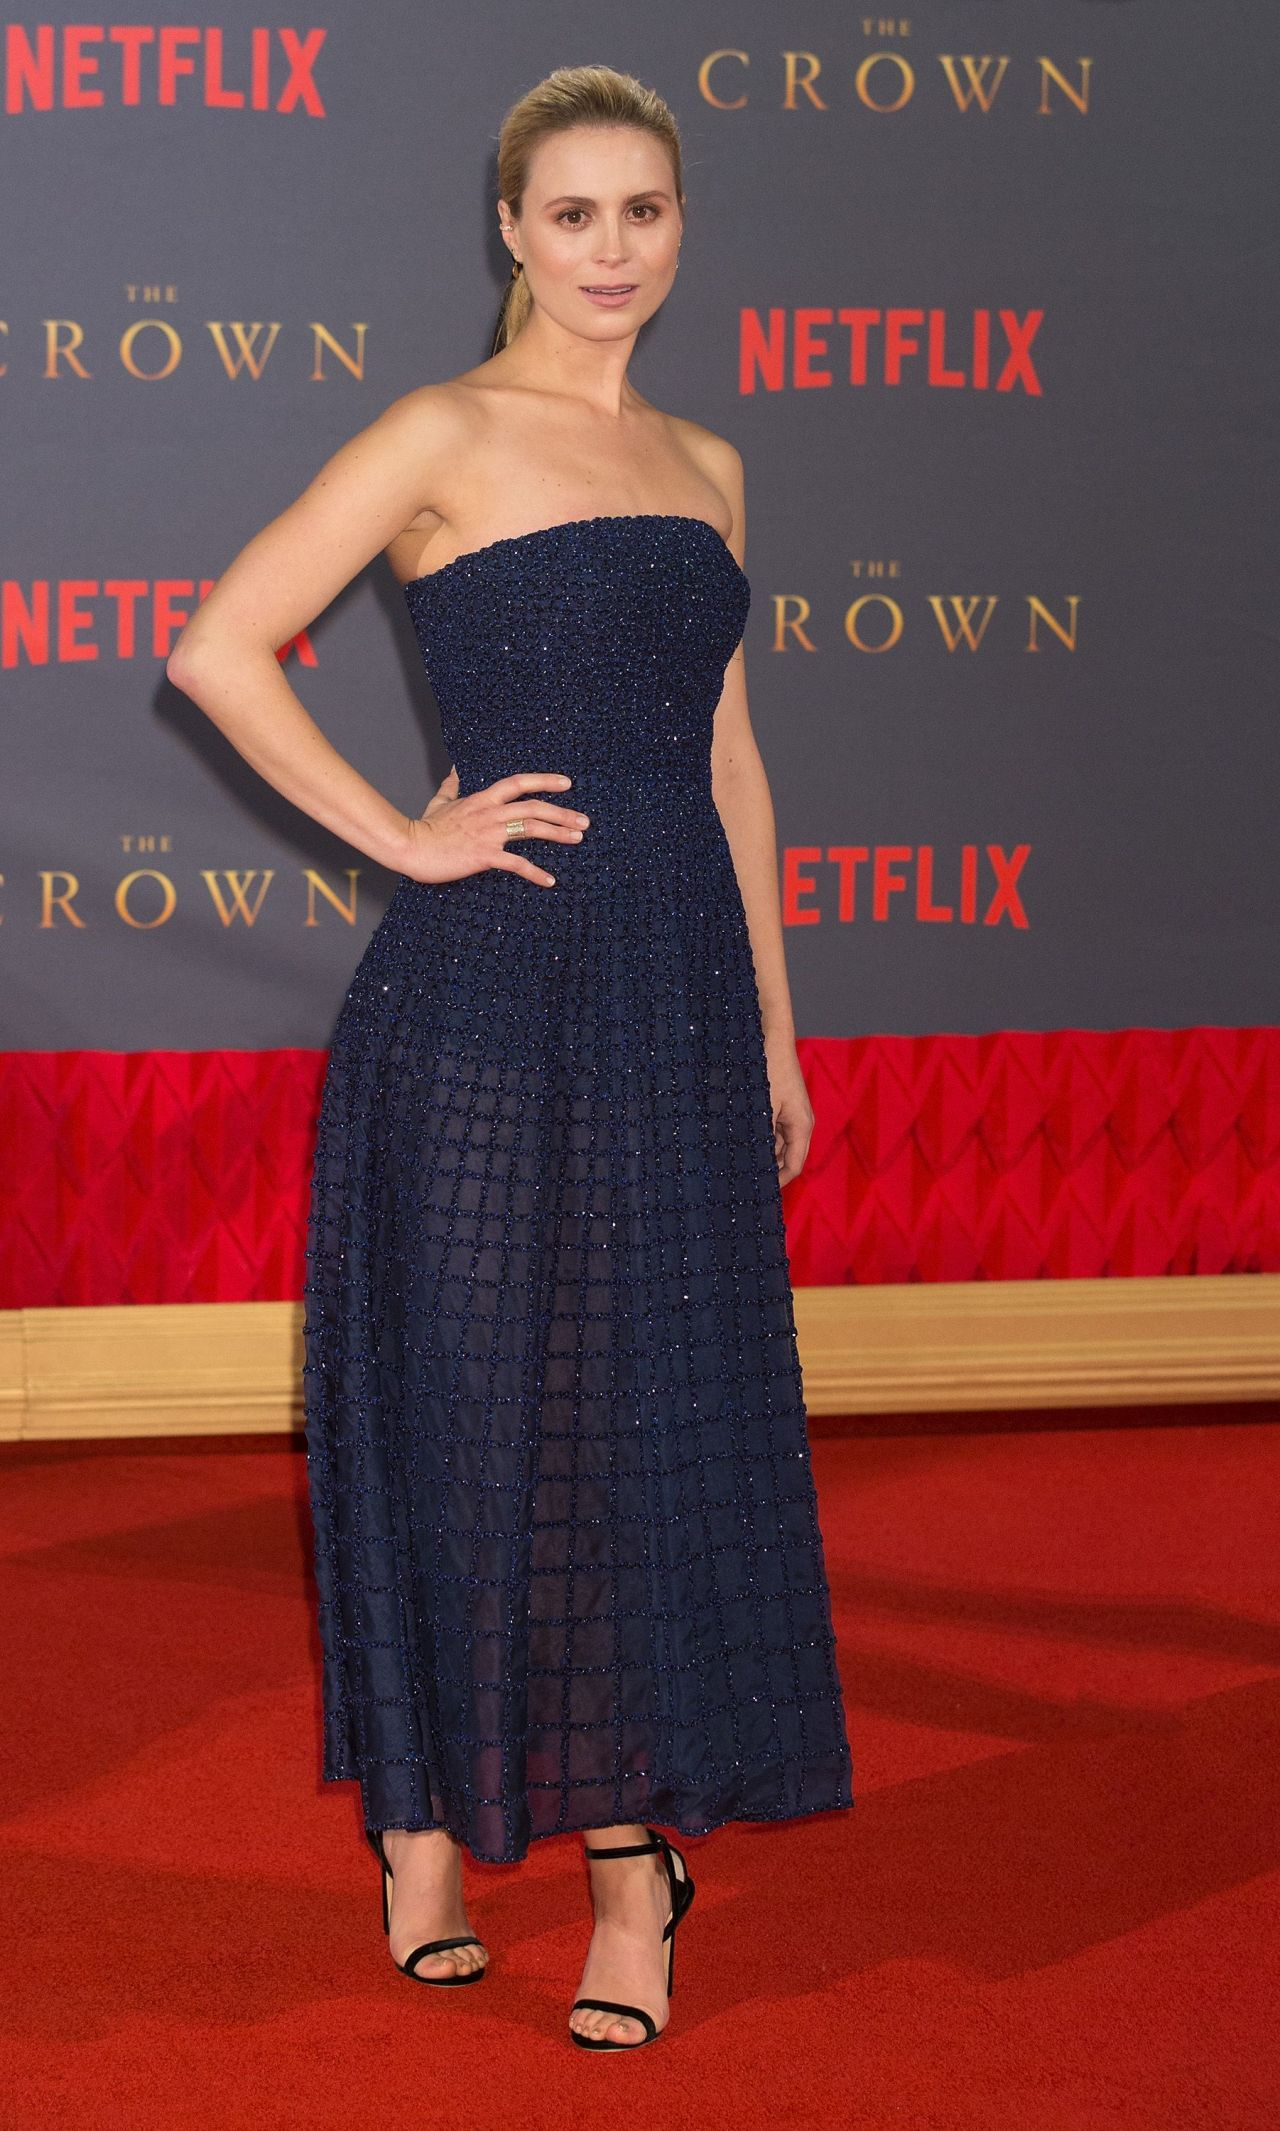 Yolanda Kettle The Crown Tv Show Premiere In London